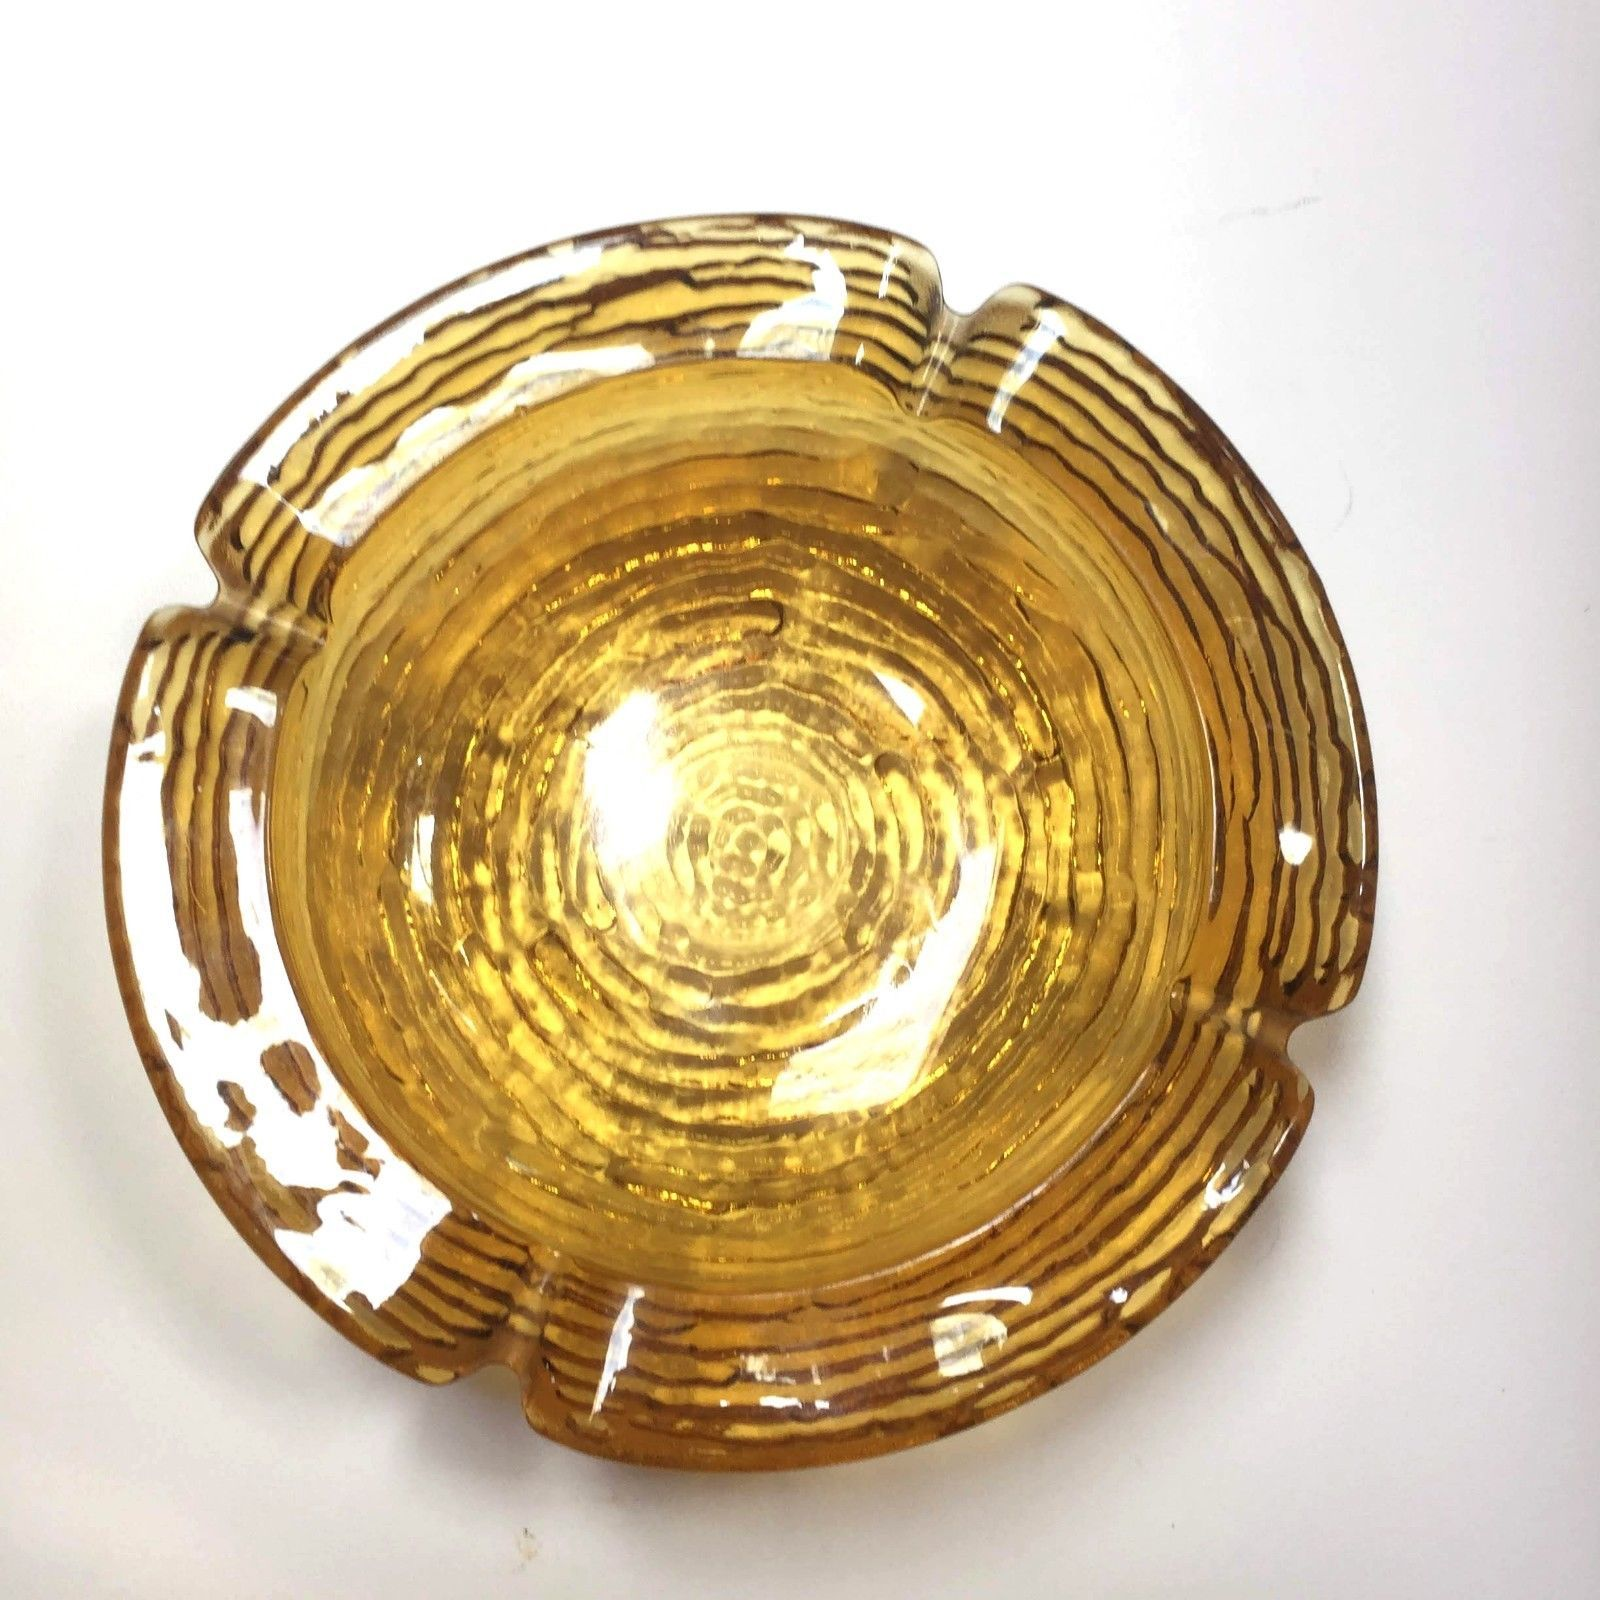 VTG Anchor Hocking Lido Soreno Amber Yellow Glass Ashtray candy dish retro 6""